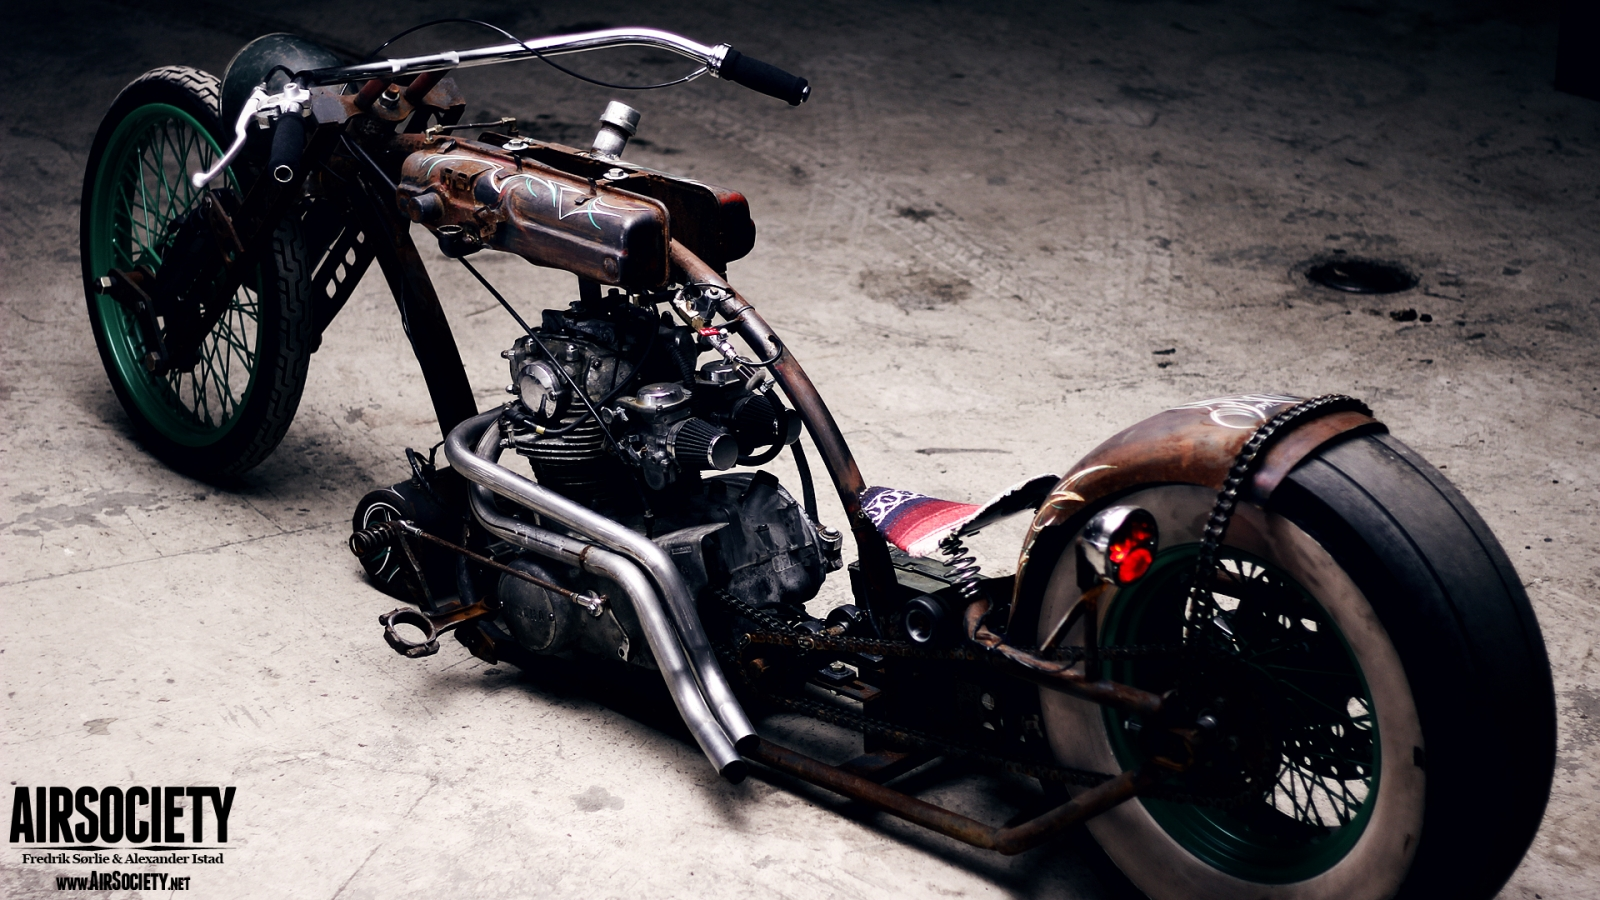 download Rat Bike HD Wallpapers AirSociety [1920x1080] for 1600x900